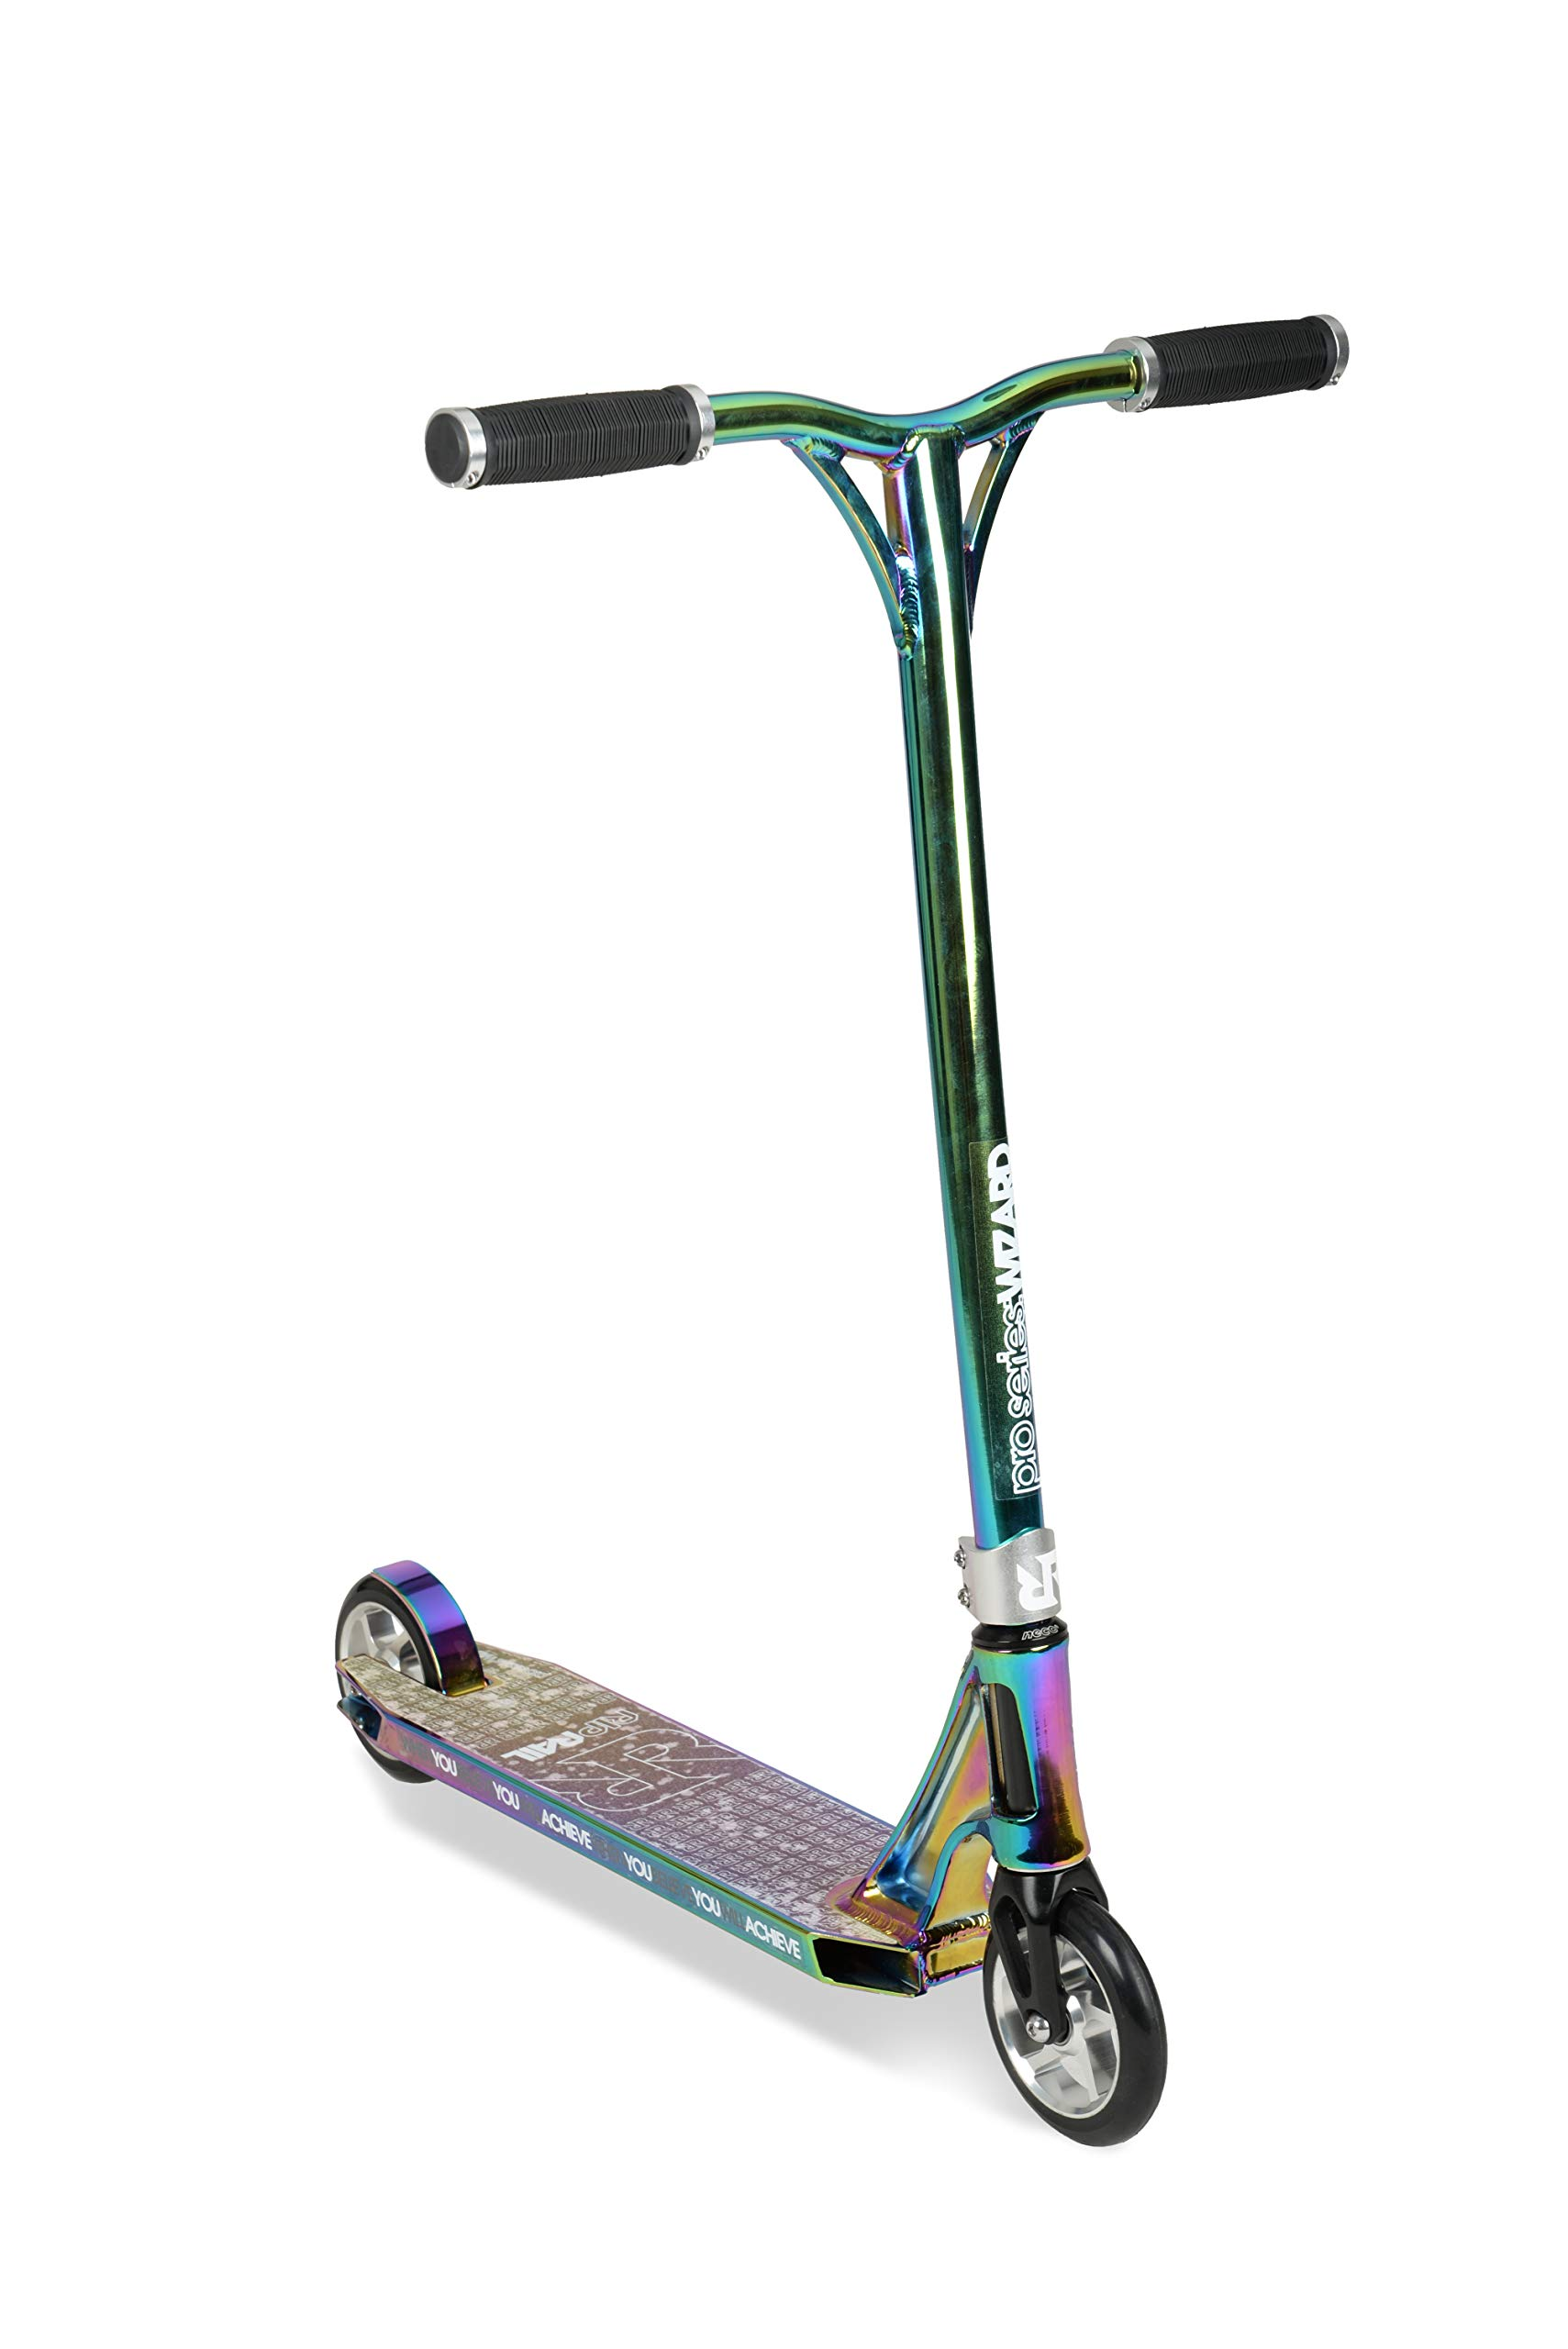 Riprail Pro Series 1 Performance Stunt Scooter with Alloy Jet Fuel Deck with Cut-Out, Alloy Core Wheels, ABEC-9 Bearings, Alloy NECO Threadless Headset, Alloy CNC Fork and Jet Fuel Alloy Bars